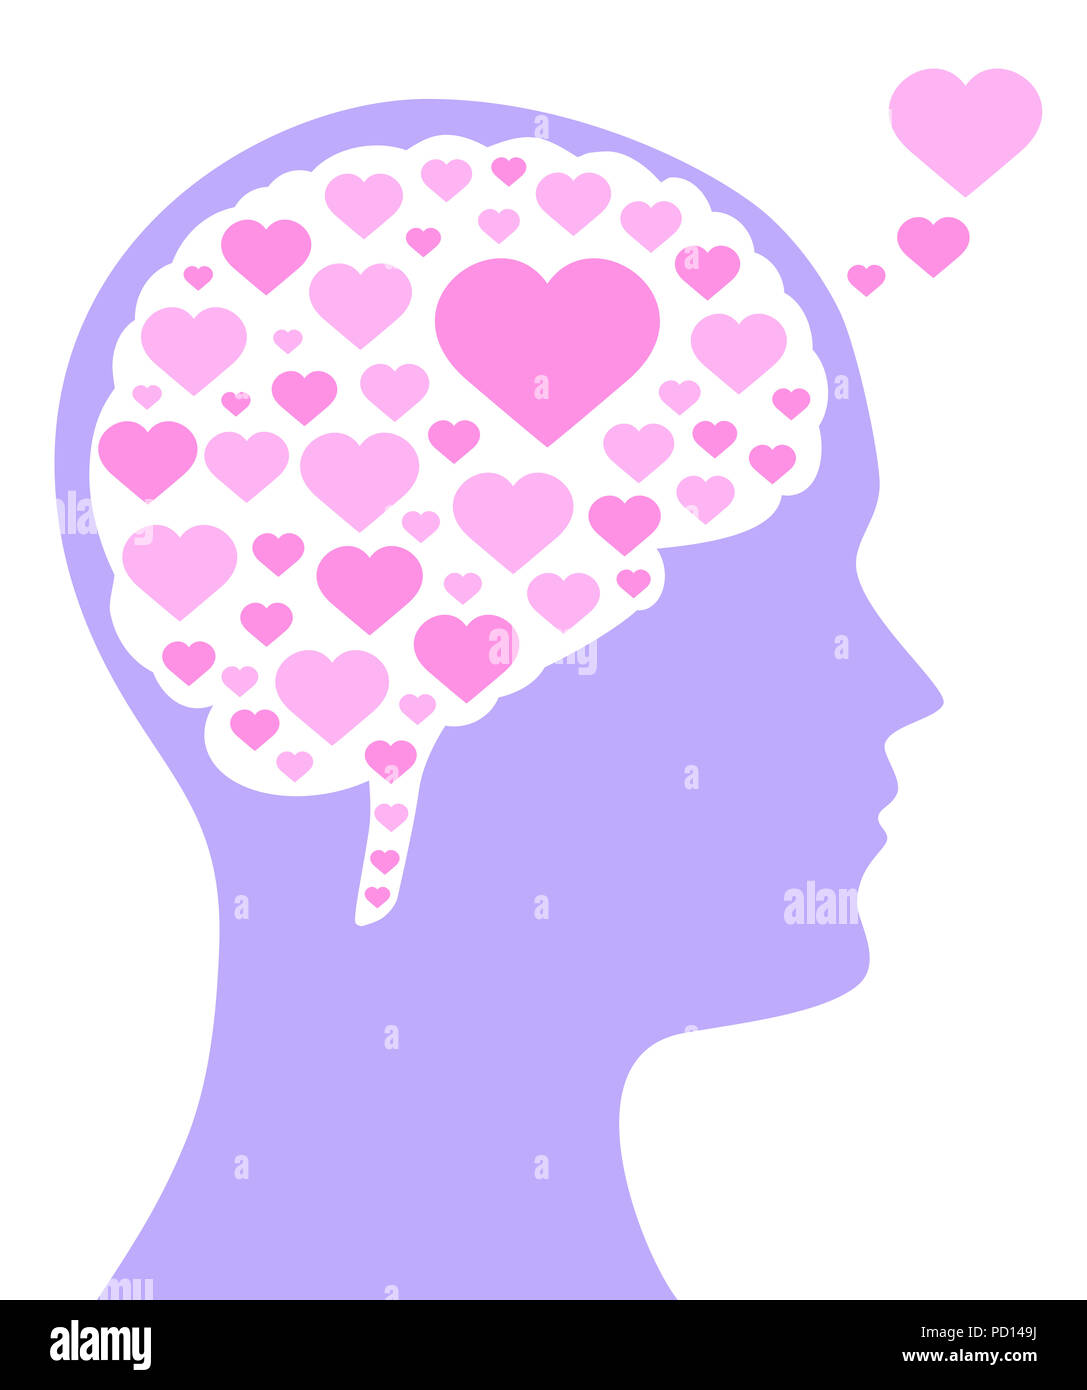 Pink colored hearts in a brain shape and in the purple silhouette of a head. A symbol for falling or being in love, liking, emotions and affection. - Stock Image